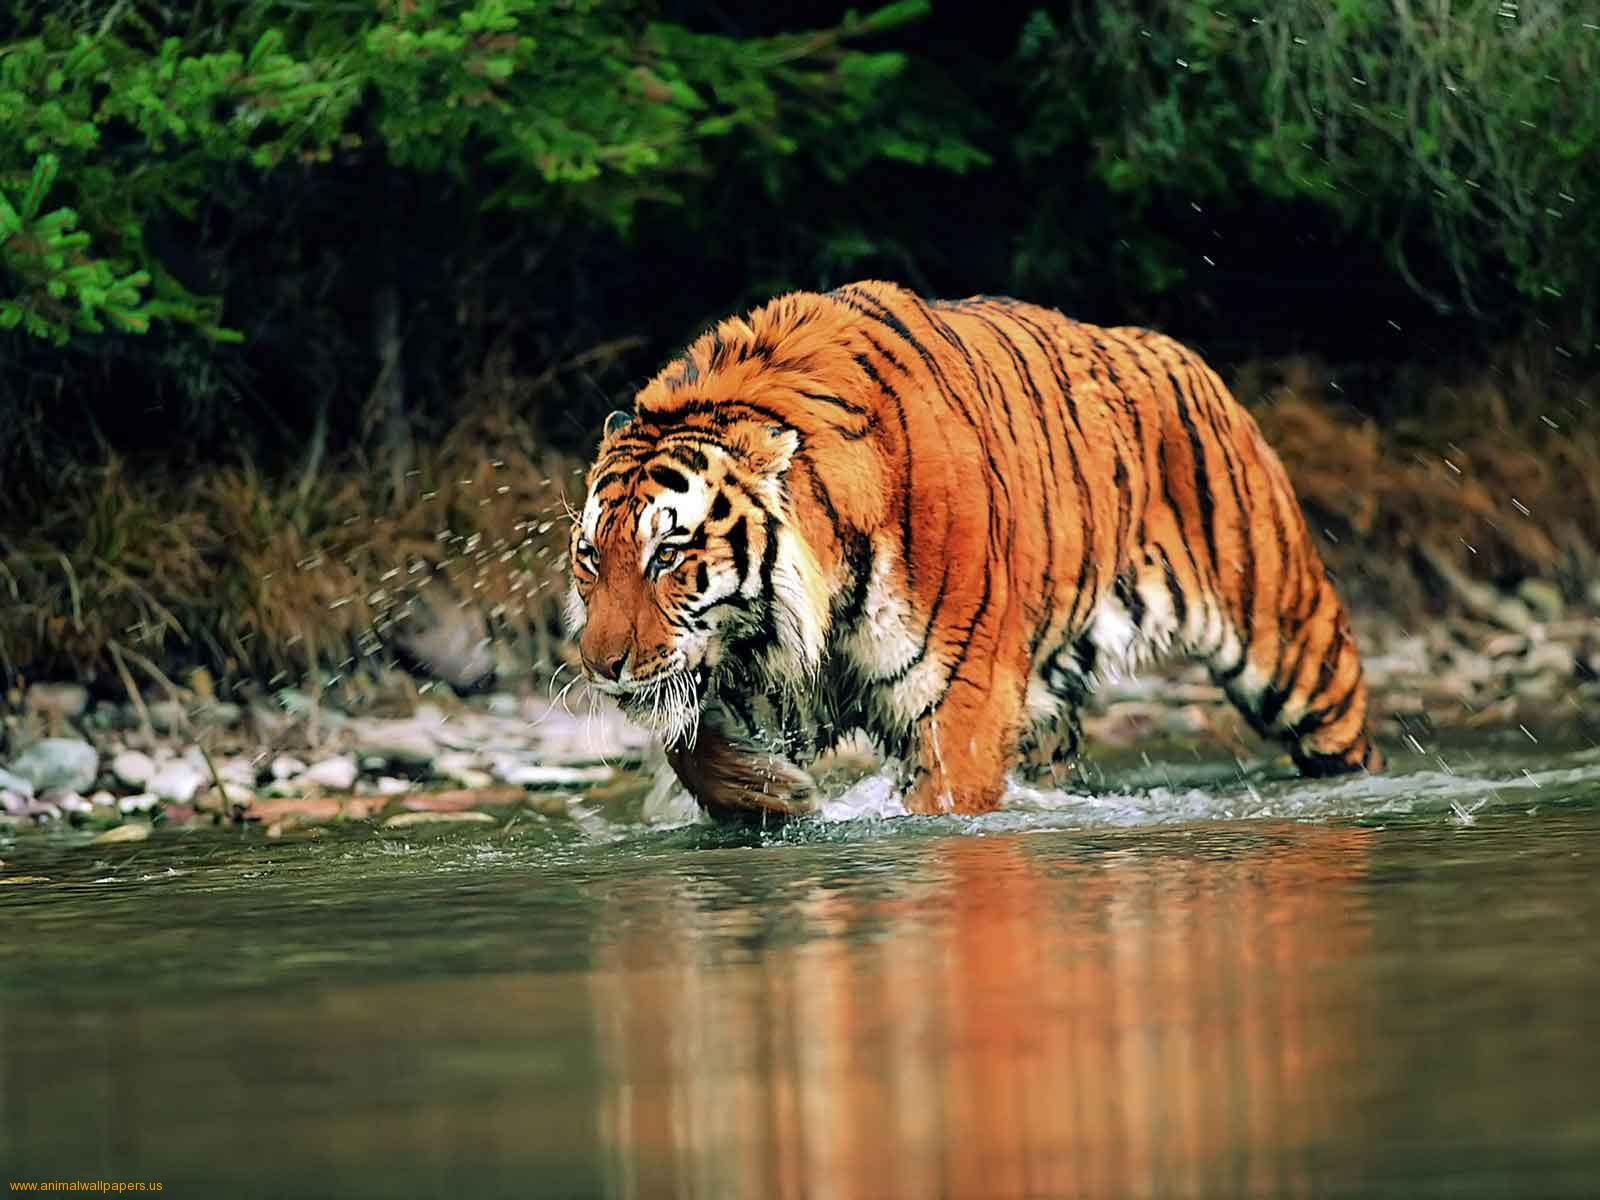 Sundarbans, home of the famous Royal Bengal Tiger is by far the largest Mangrove forest in the world.